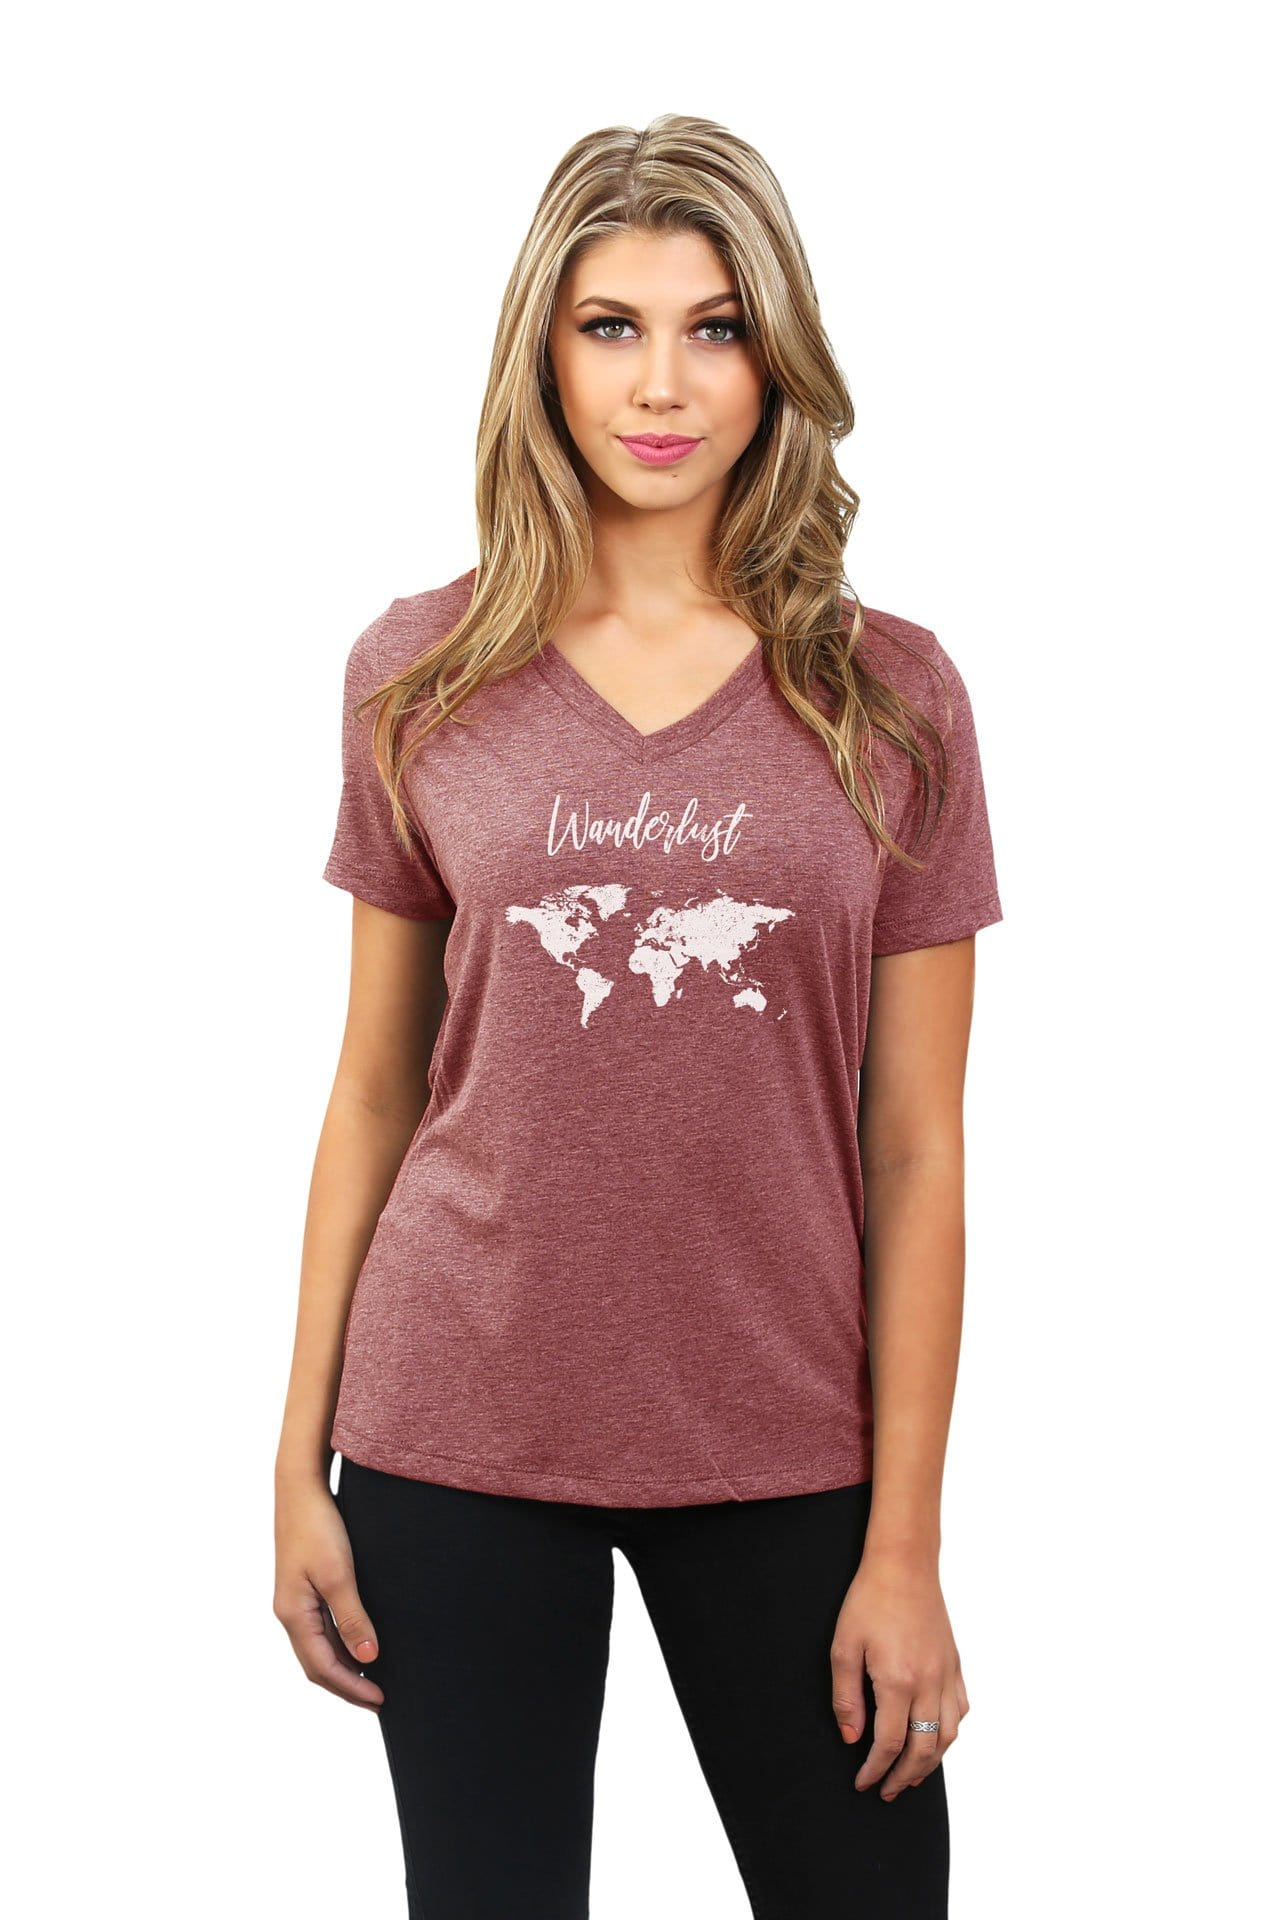 Wanderlust Travel World Women's Relaxed V-Neck T-Shirt Tee Heather Rouge